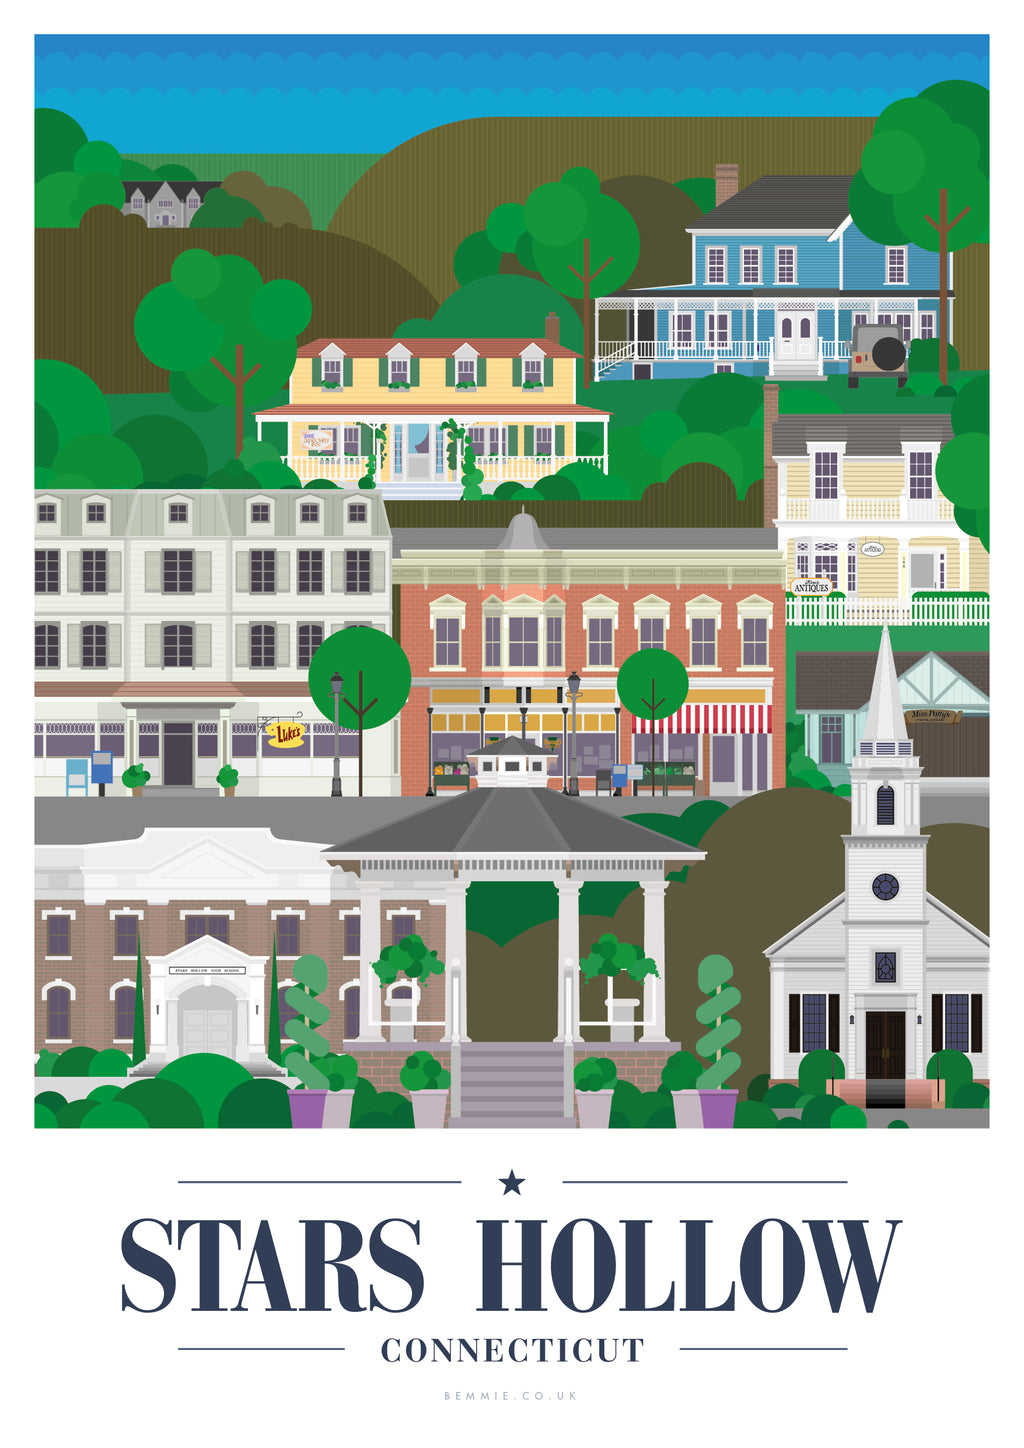 Stars Hollow Print - Inspired by the Gilmore Girls - BemmiesBazaar